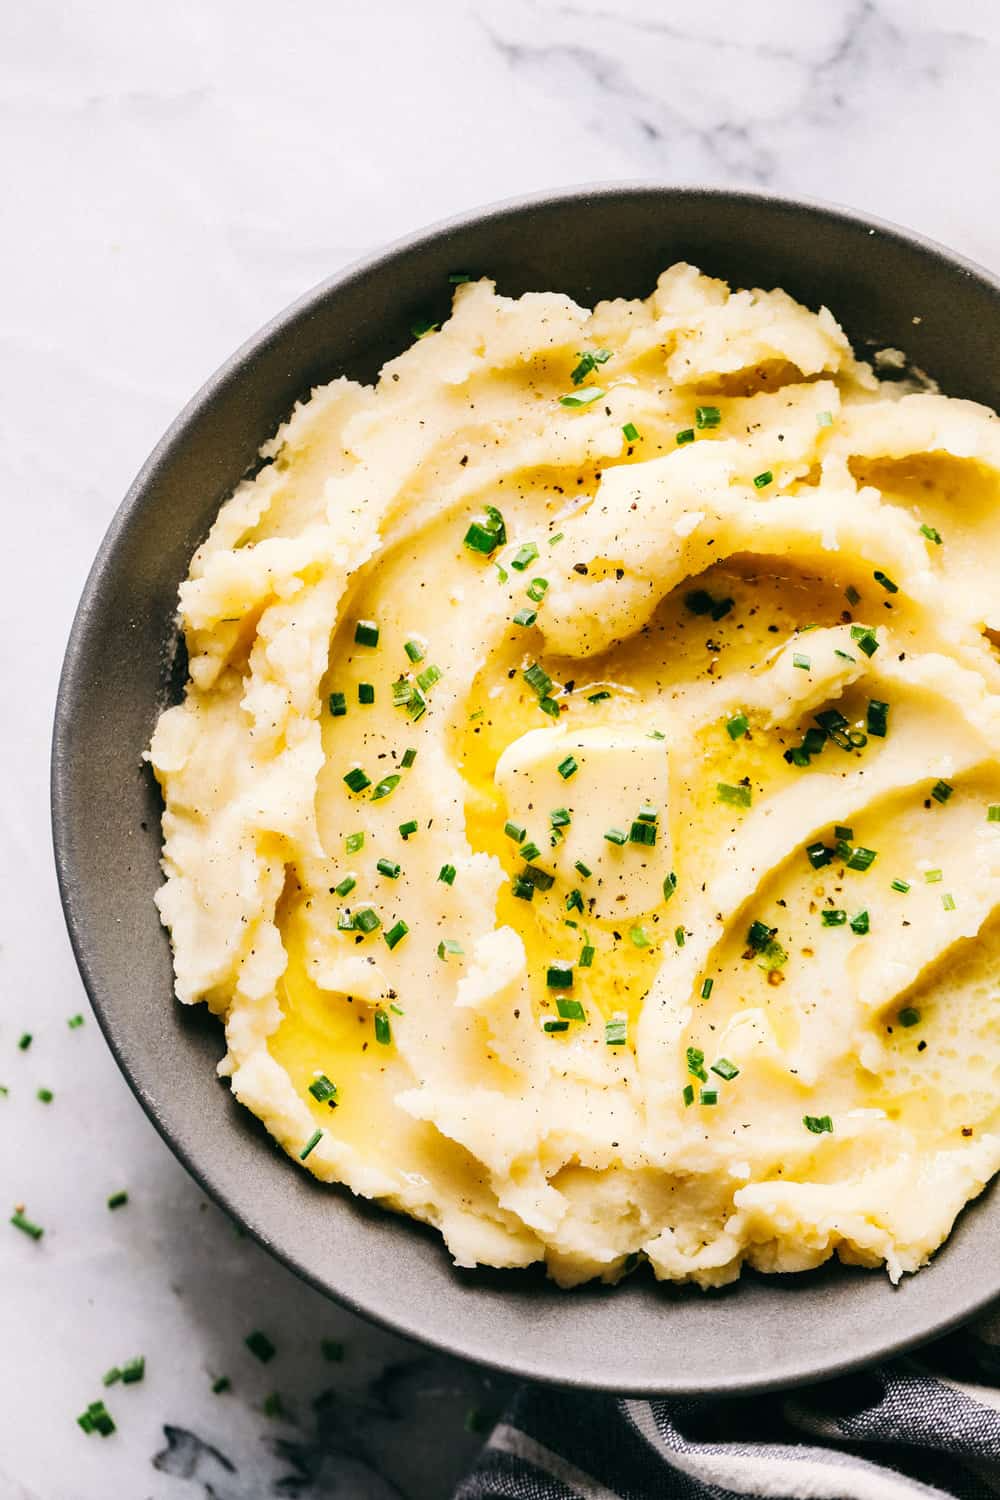 Dad S Famous Mashed Potatoes Are Always The Star Of A Dinner Table Perfectly Creamy Buttery And They H Vegetables Recipes Side Mashed Potato Recipes Recipes